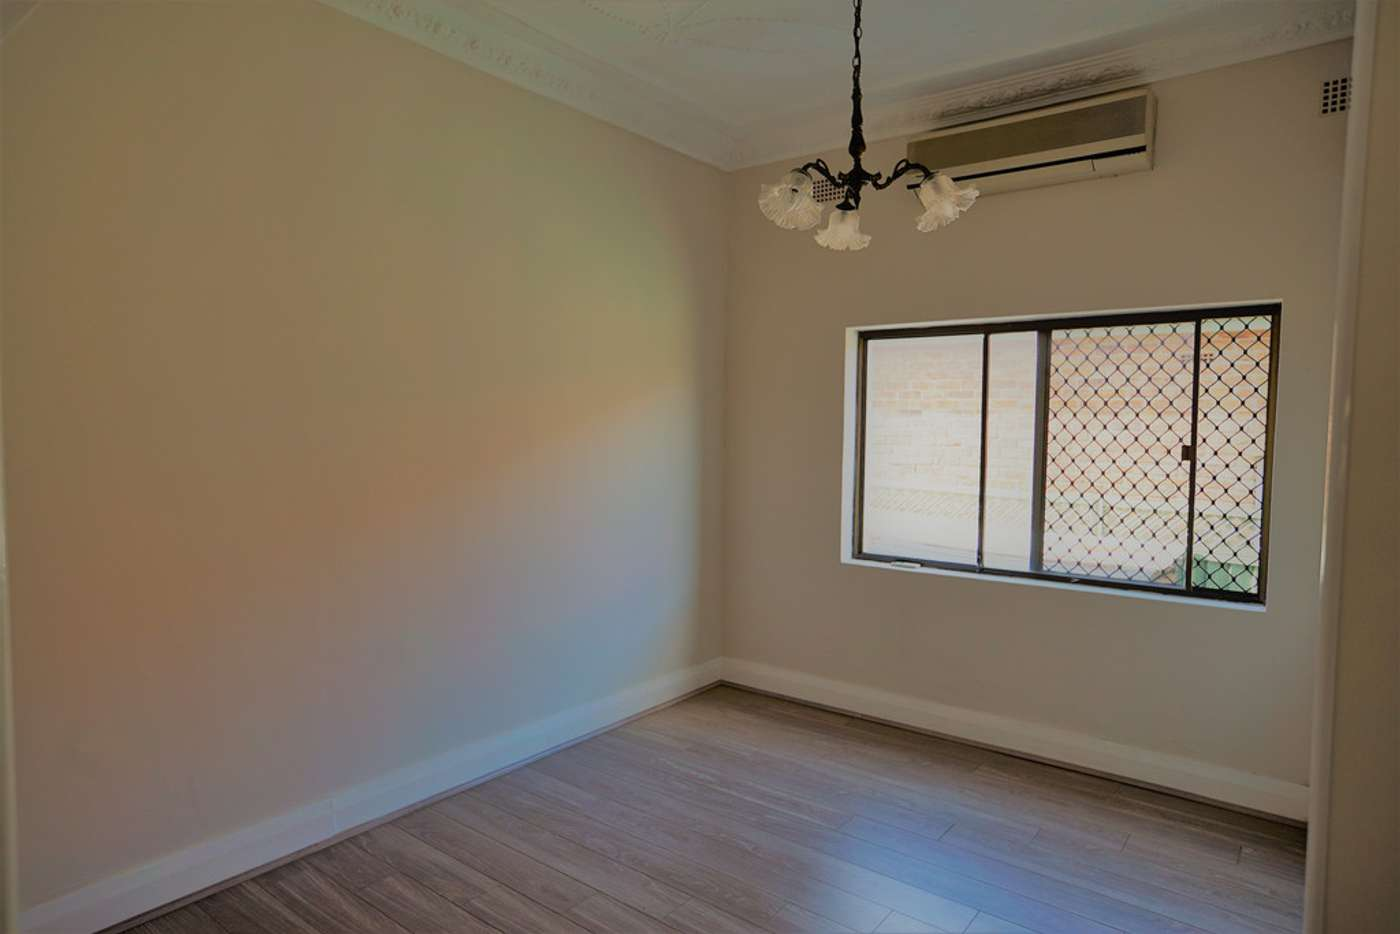 Sixth view of Homely house listing, 18 Franklyn Street, Concord NSW 2137